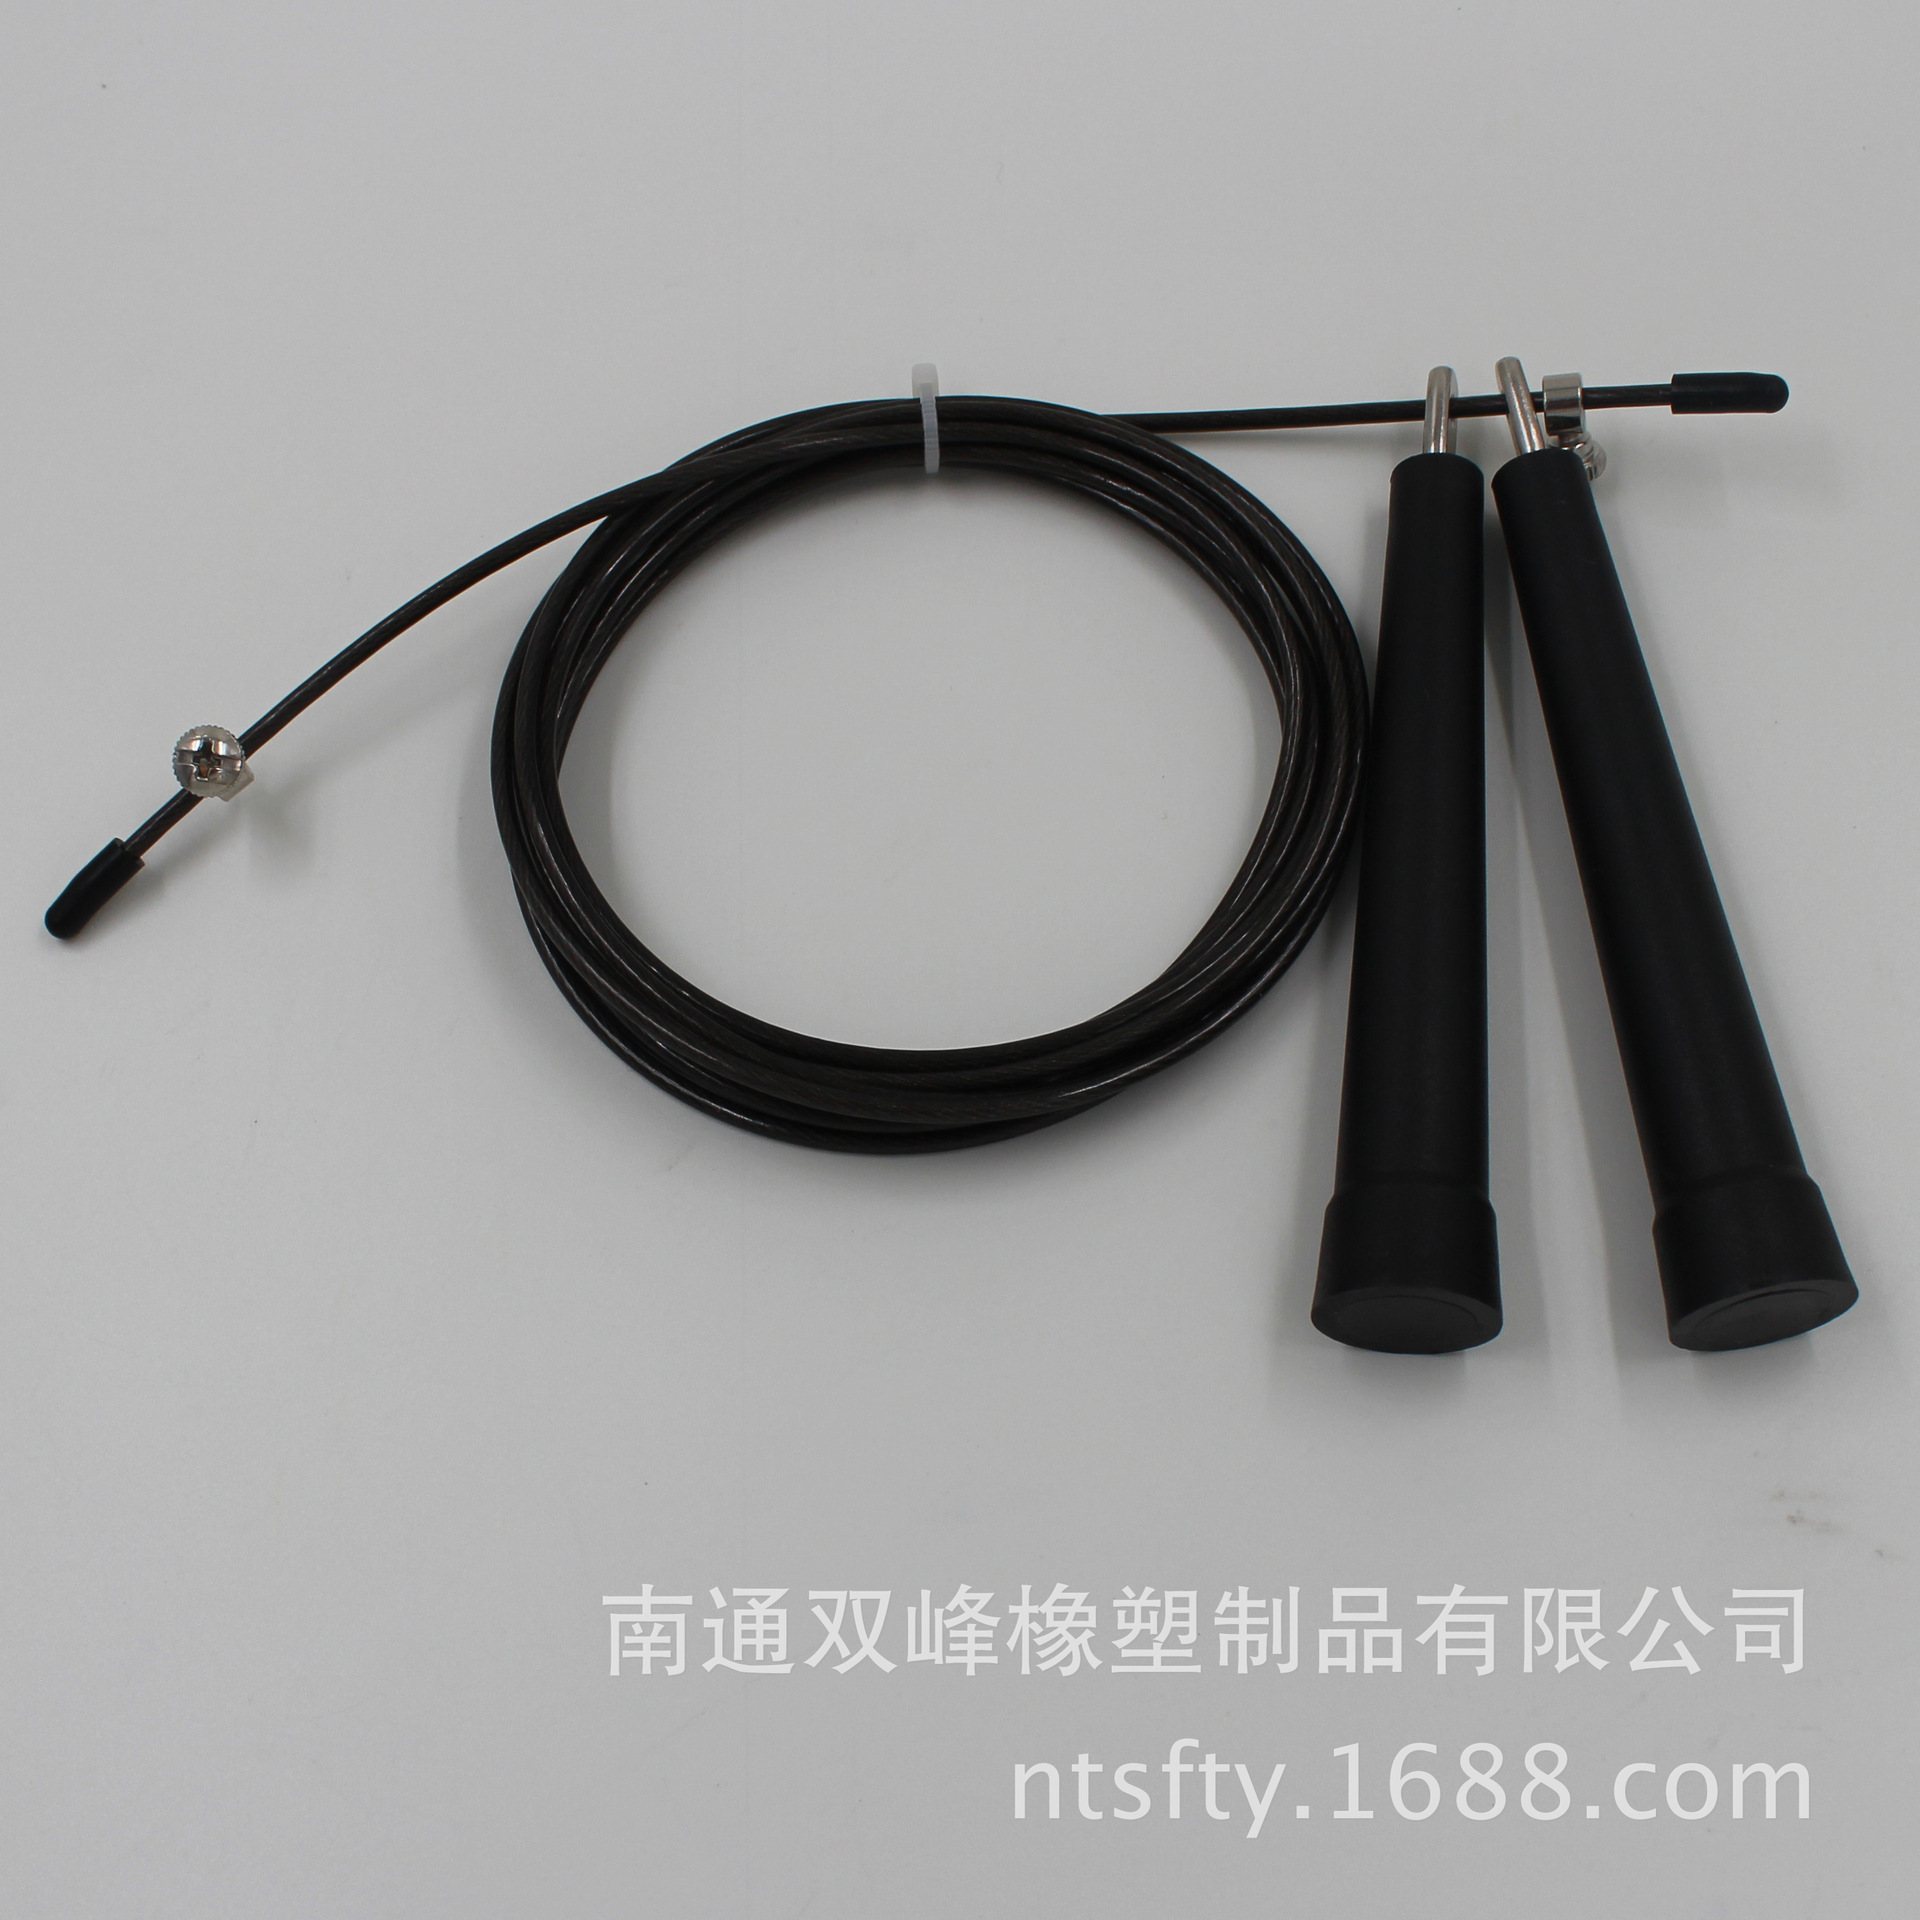 Factory Wholesale Steel Wire Jump Rope   Iron Head Jump Rope Metal Head Jump Rope Rapid Jump Rope Only